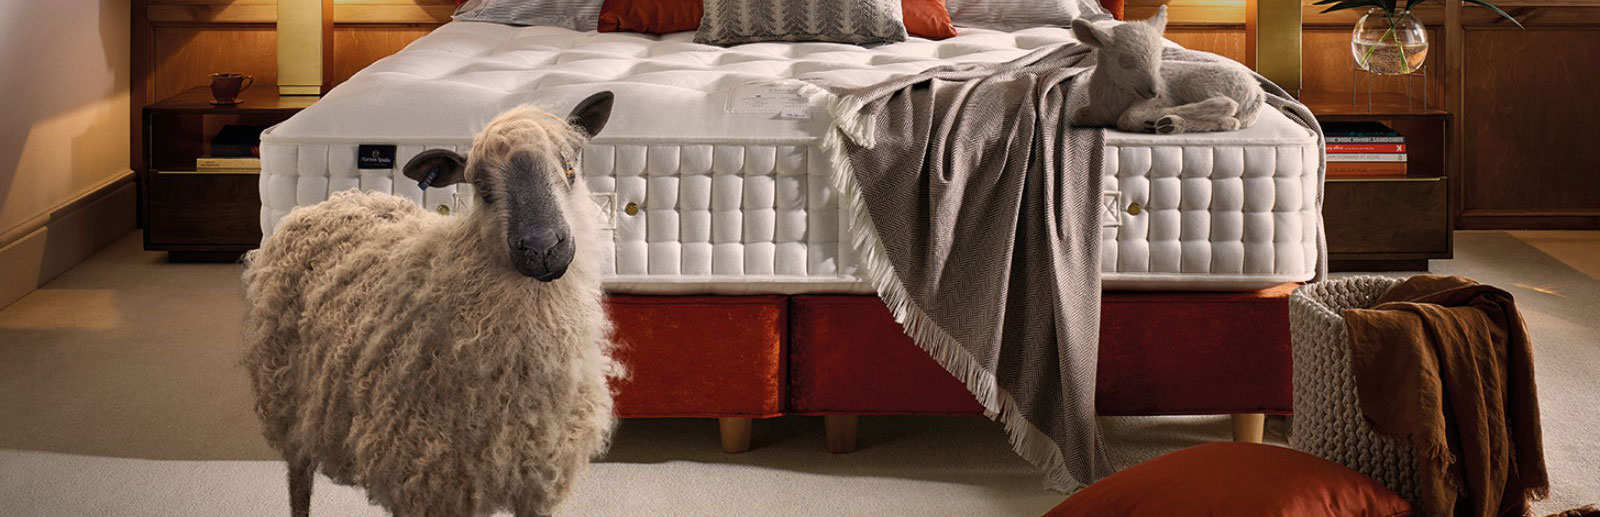 Image of Harrison Mattress and bed with a realistic animated sheep standing in front of it